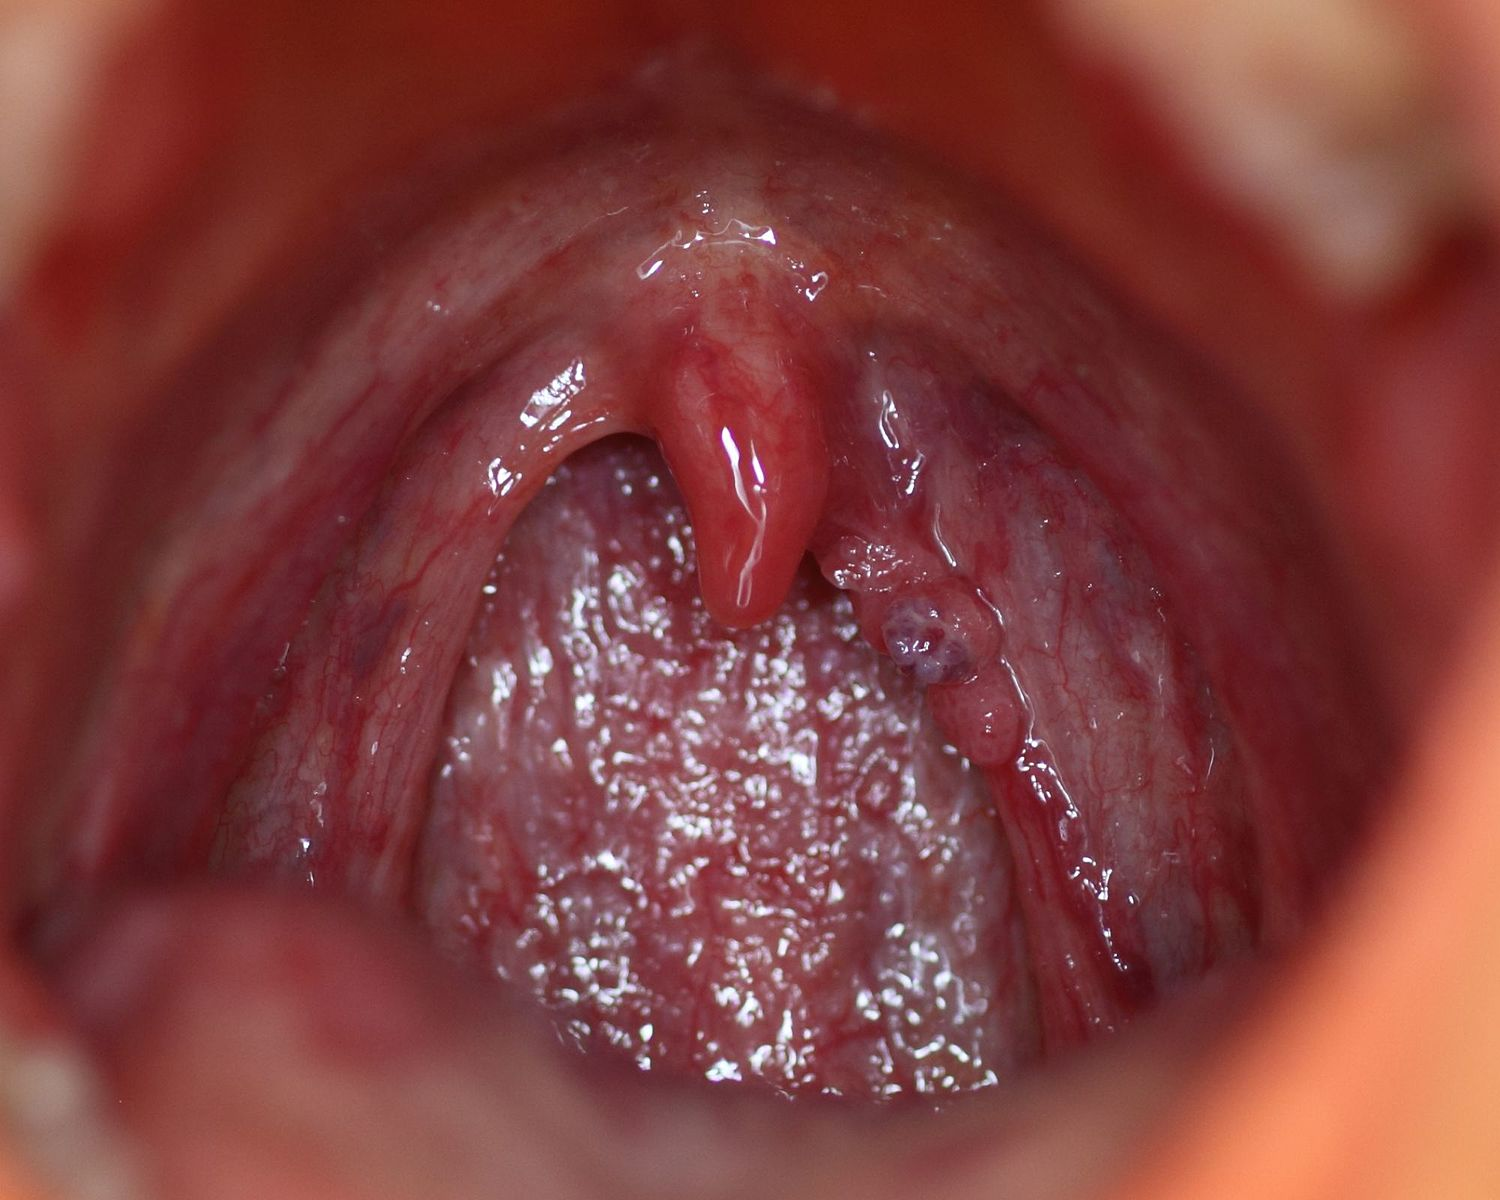 hpv virus symptoms throat